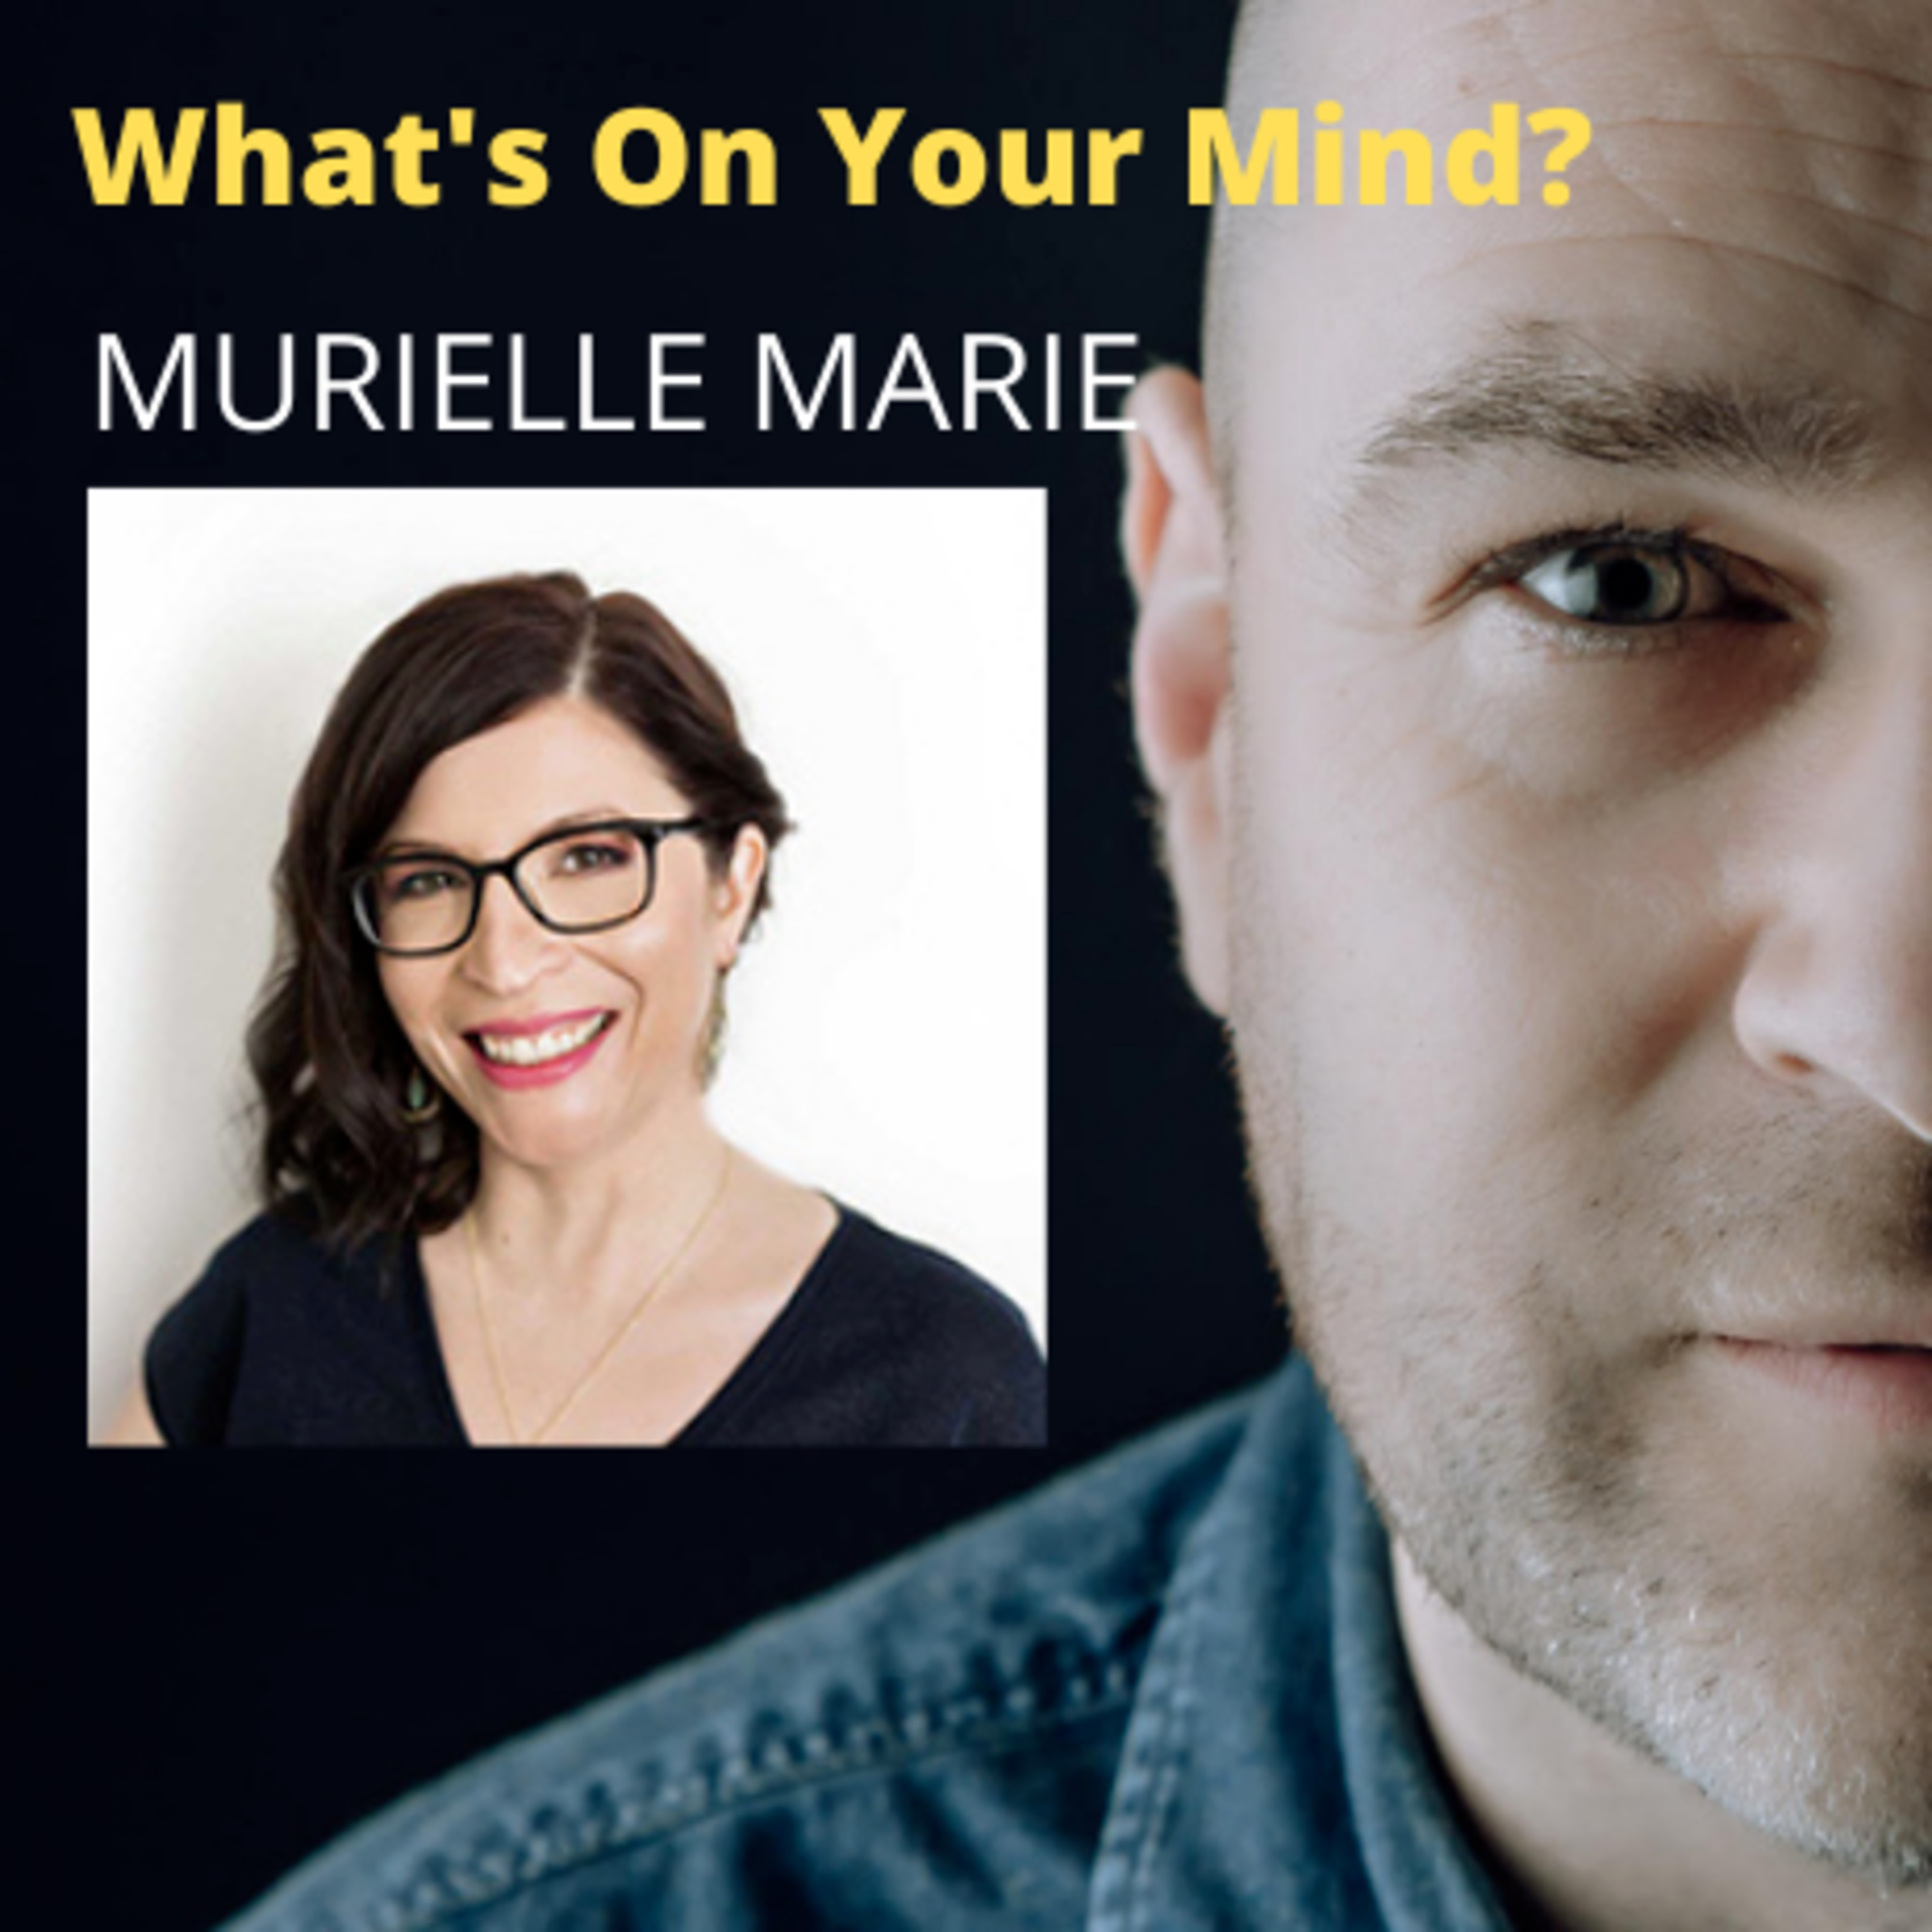 What's On Your Mind 14 (50): Murielle Marie